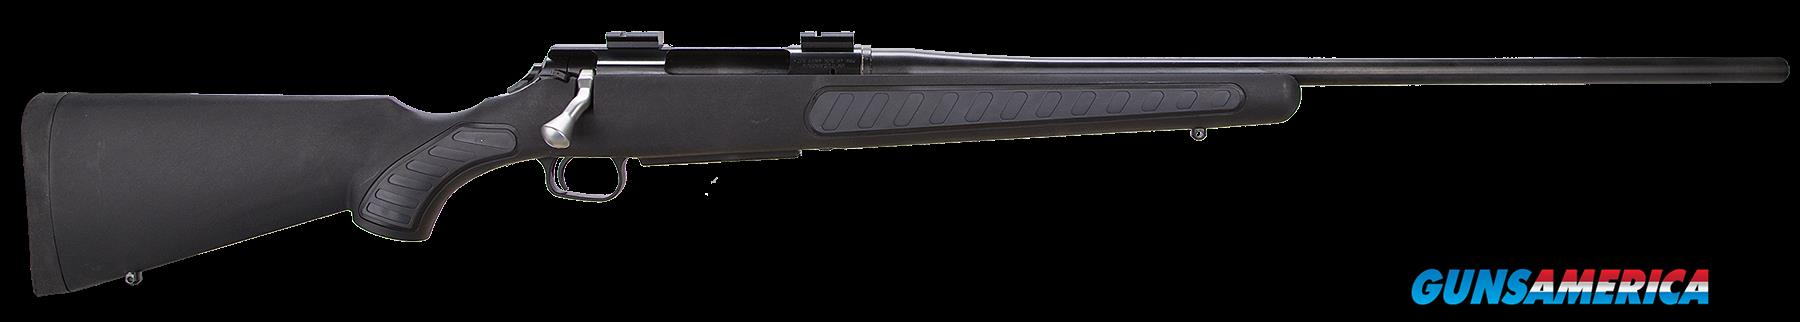 "T/C Arms 10175565 Venture Standard Bolt 270 Win 24"" 3+1 Synthetic w/Rubber Panels Black Stk Blued  Guns > Rifles > TU Misc Rifles"